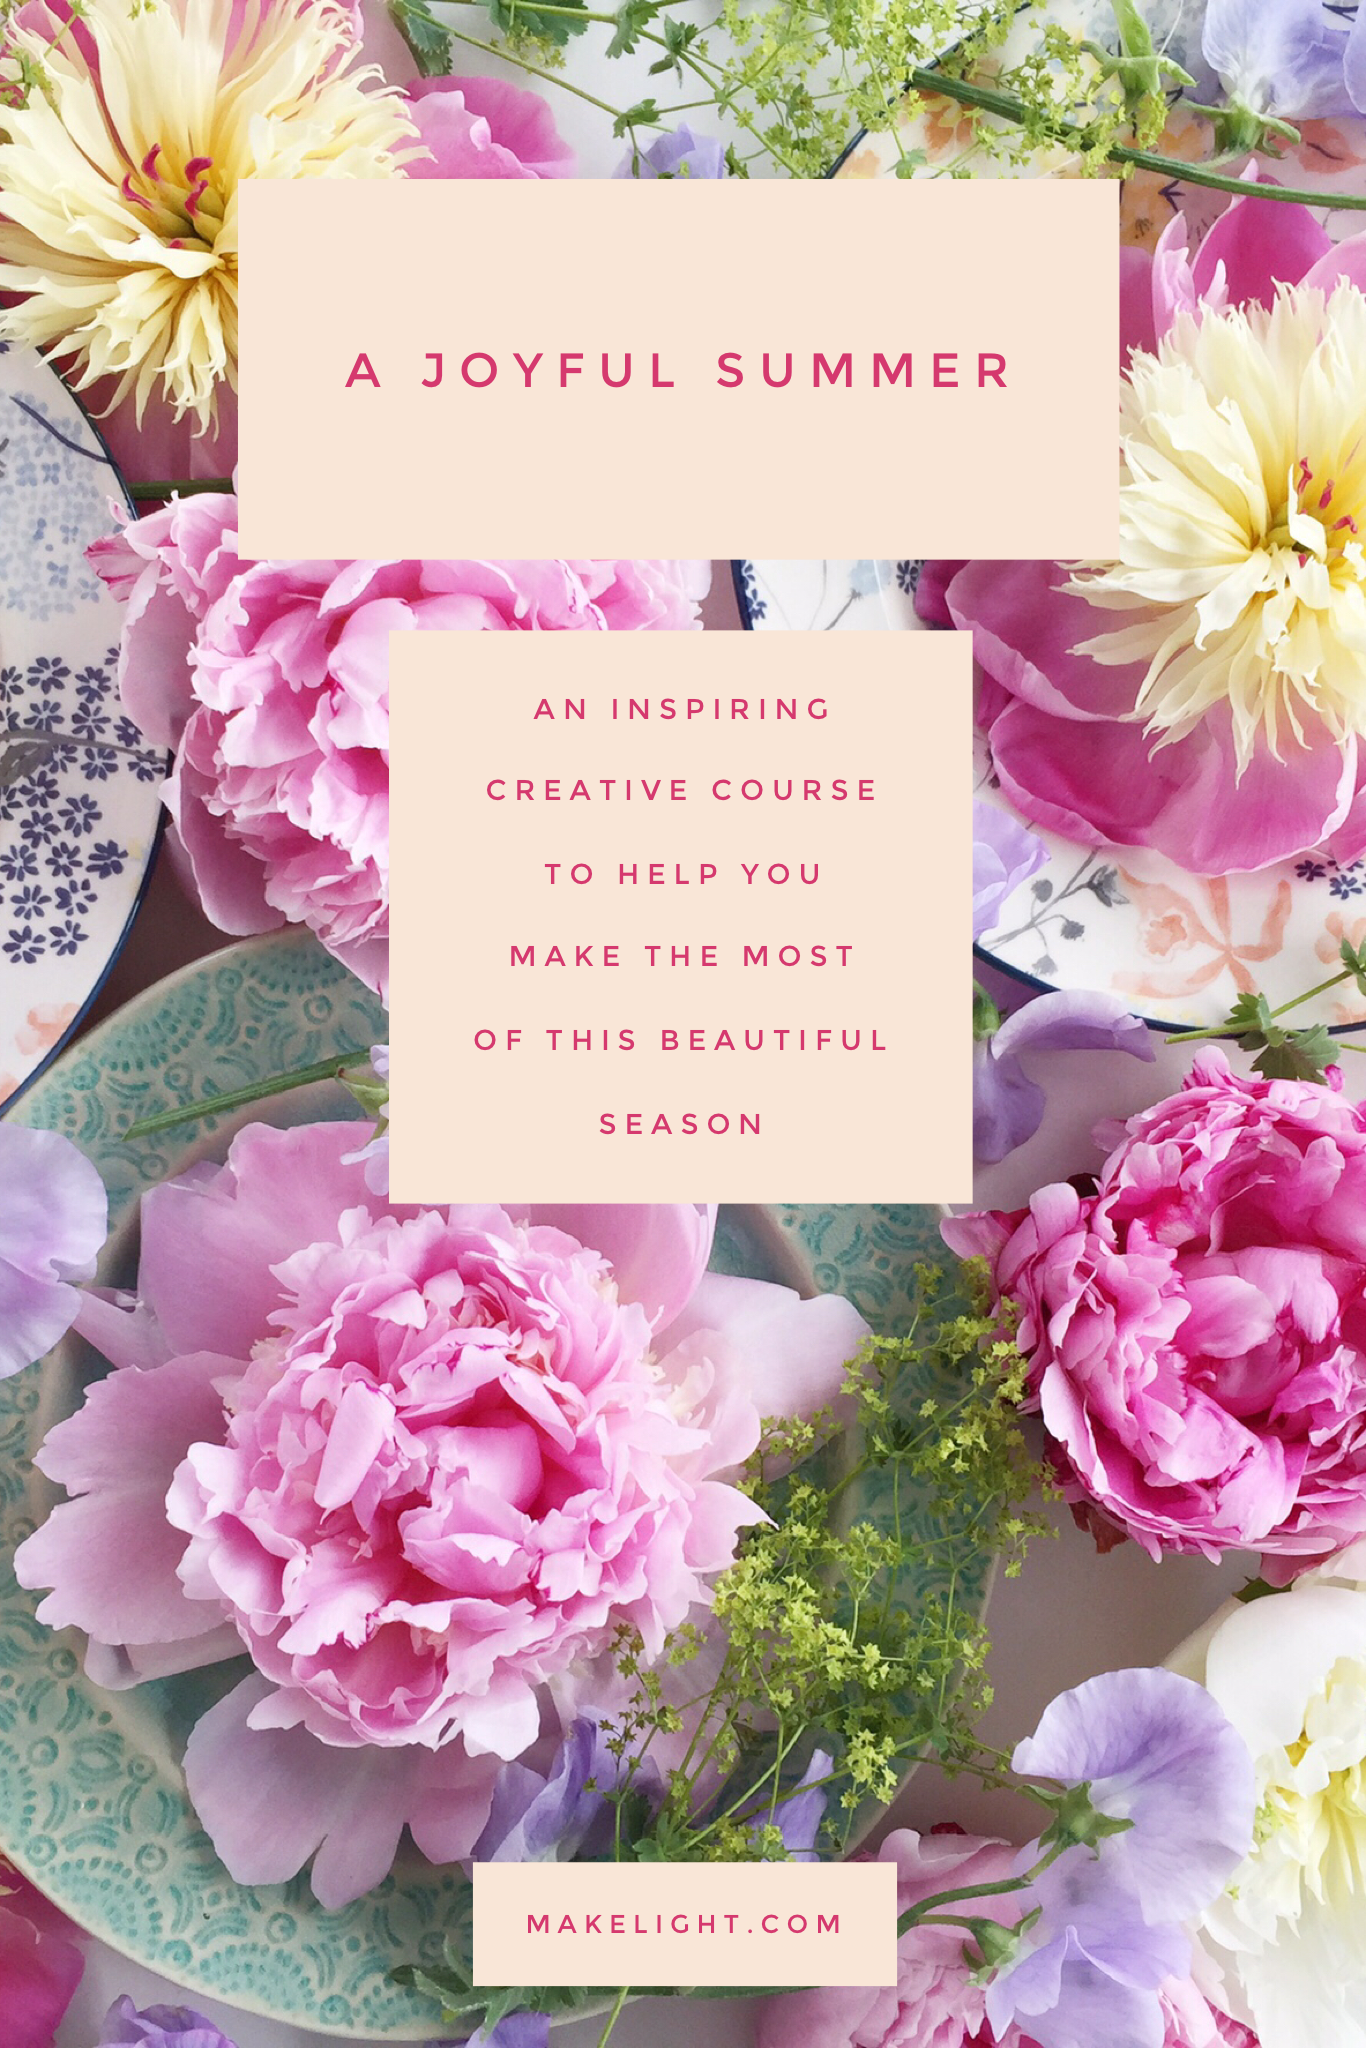 A brand new two month course to help make your Summer full of Joy!